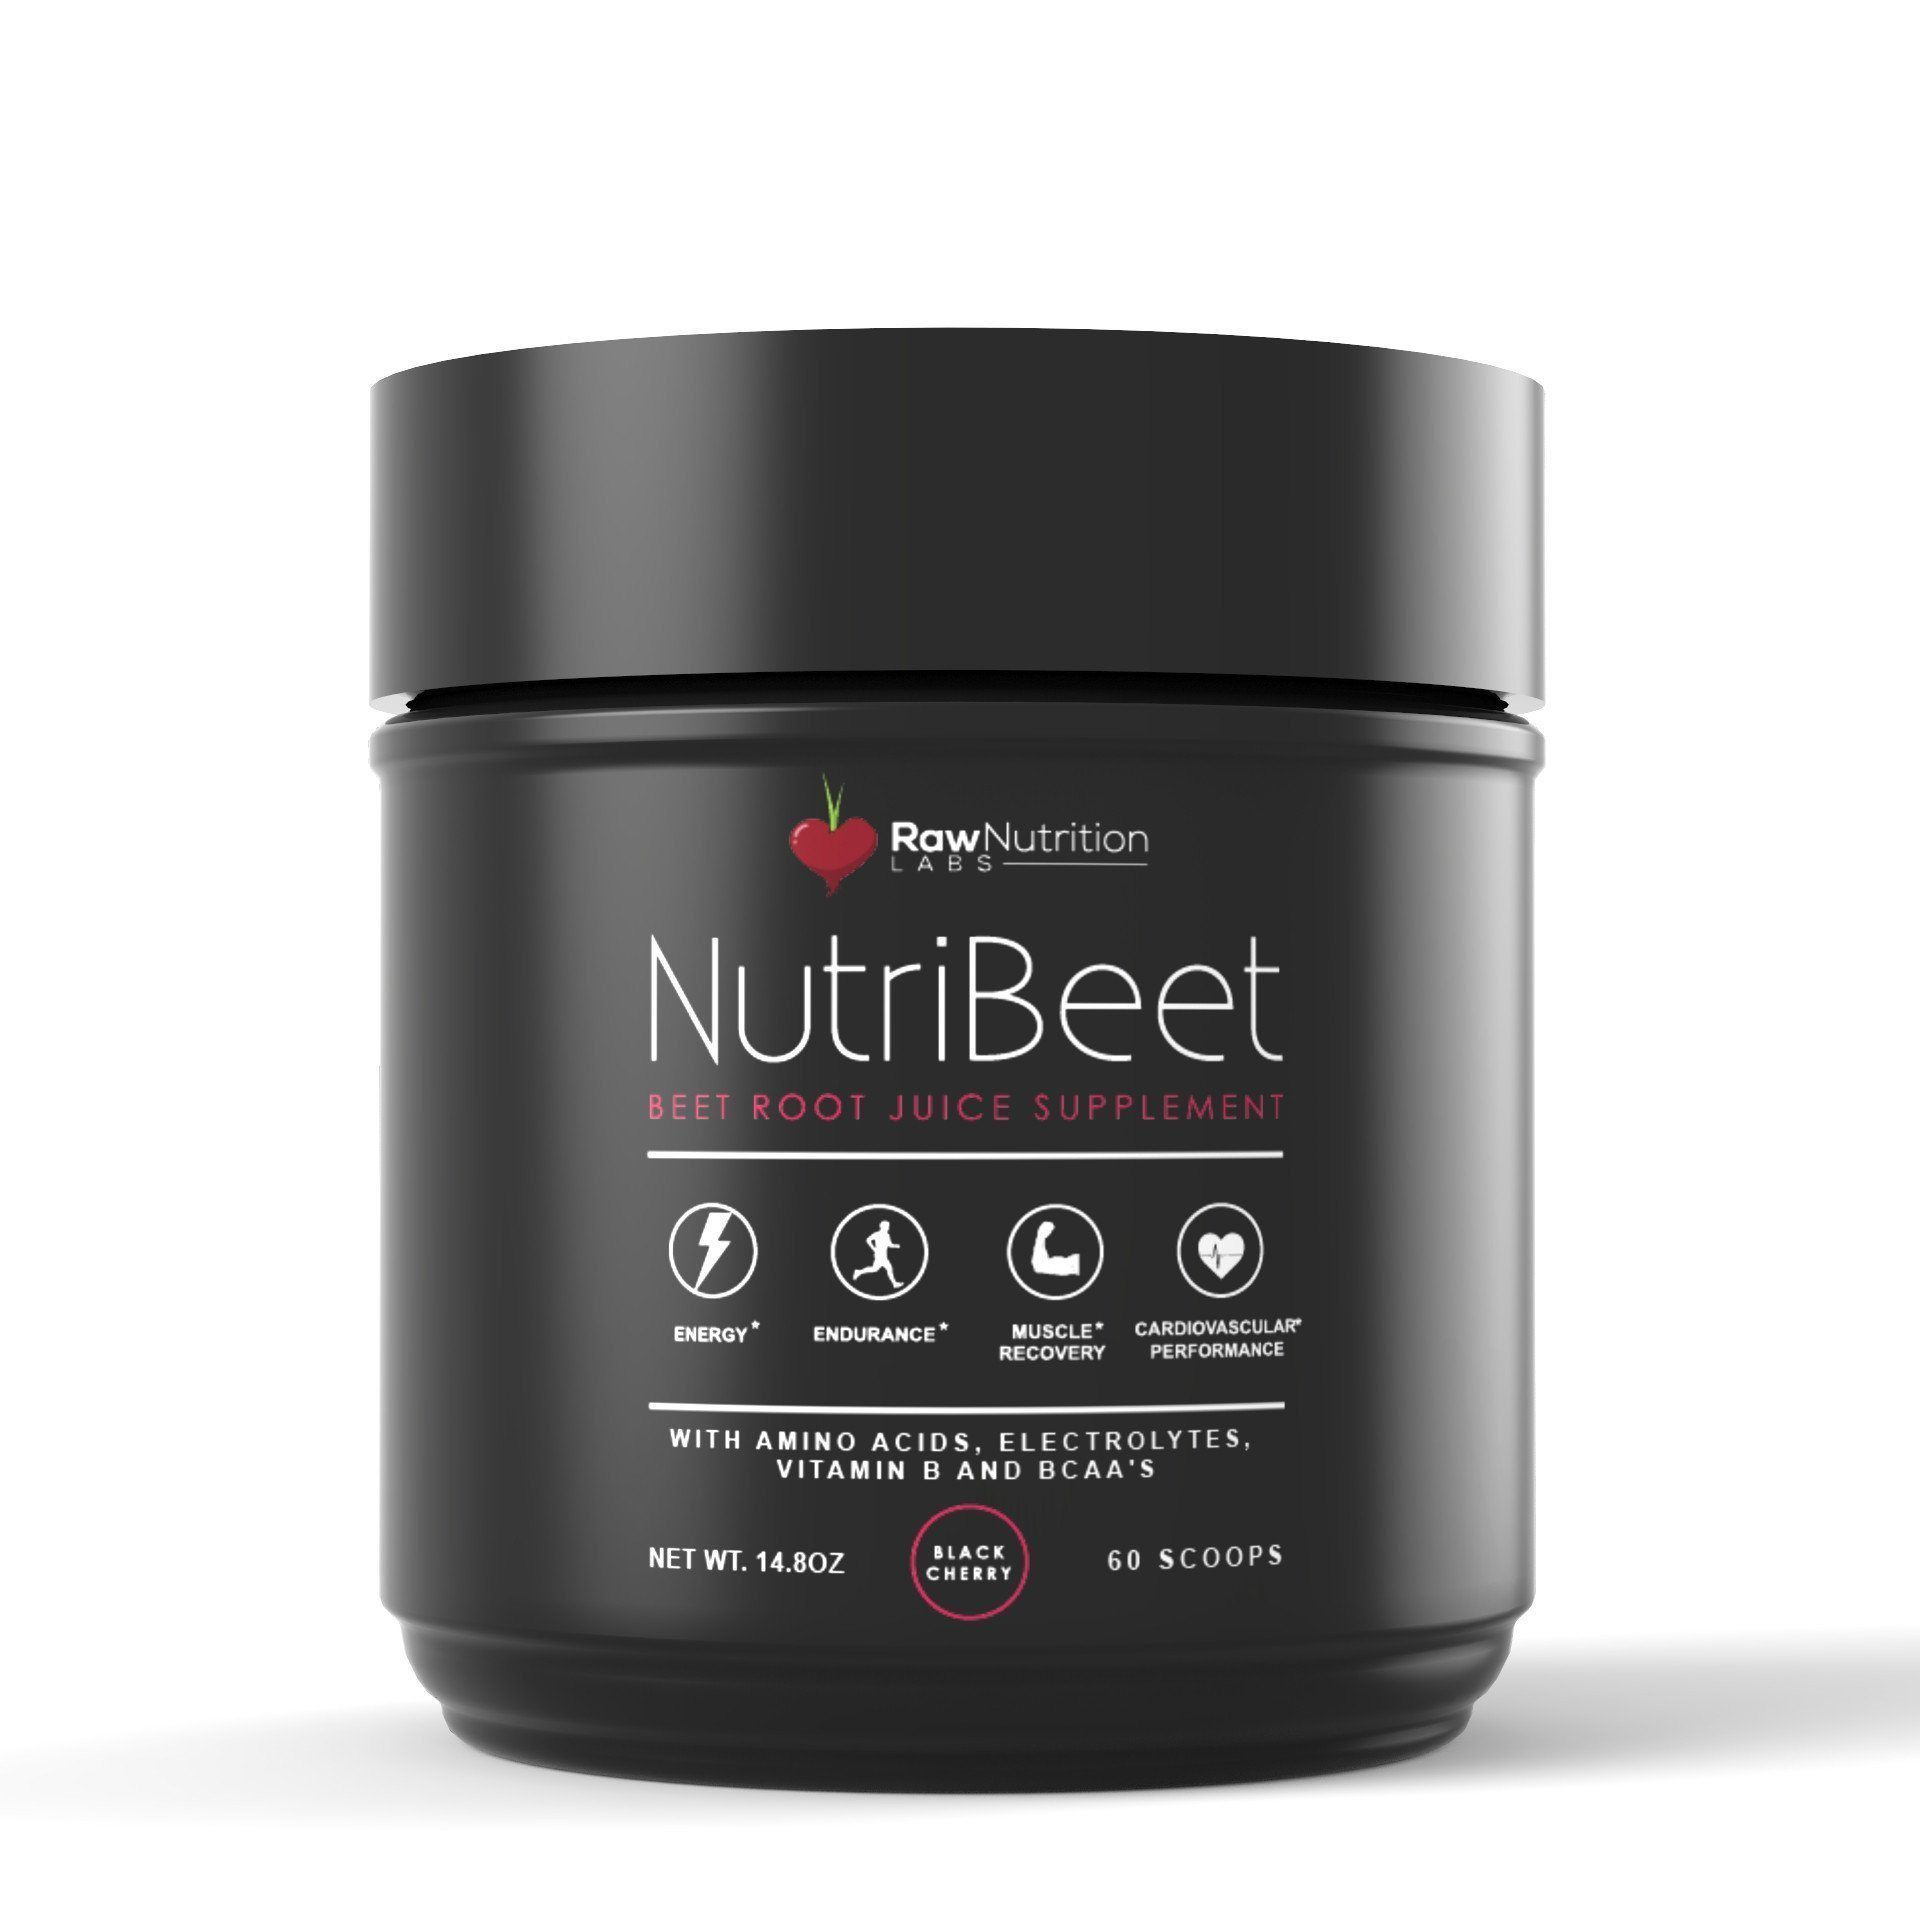 NutriBeet - Nitric Oxide Optimizer - Organic Beet Root Juice Powder w/ Amino Nitrate Matrix, Electrolytes, Vitamin B Energy Boost & BCAA Recovery Support - Extended Performance Formula (60 scoops) - Raw Nutrition Labs